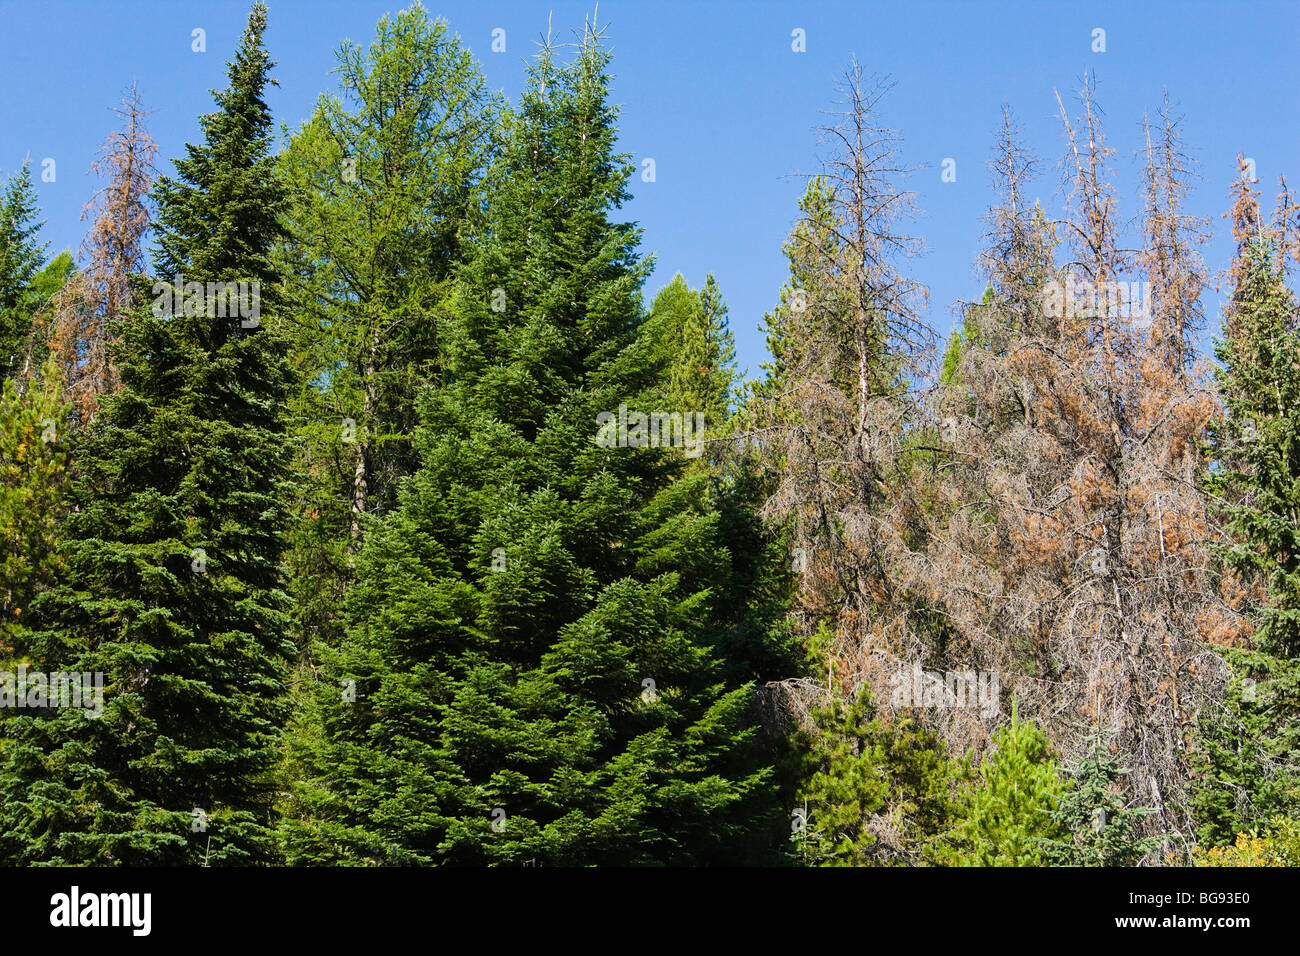 Conifer trees in Idaho. Some infested and killed by the Mountain Pine Beetle and some not. - Stock Image